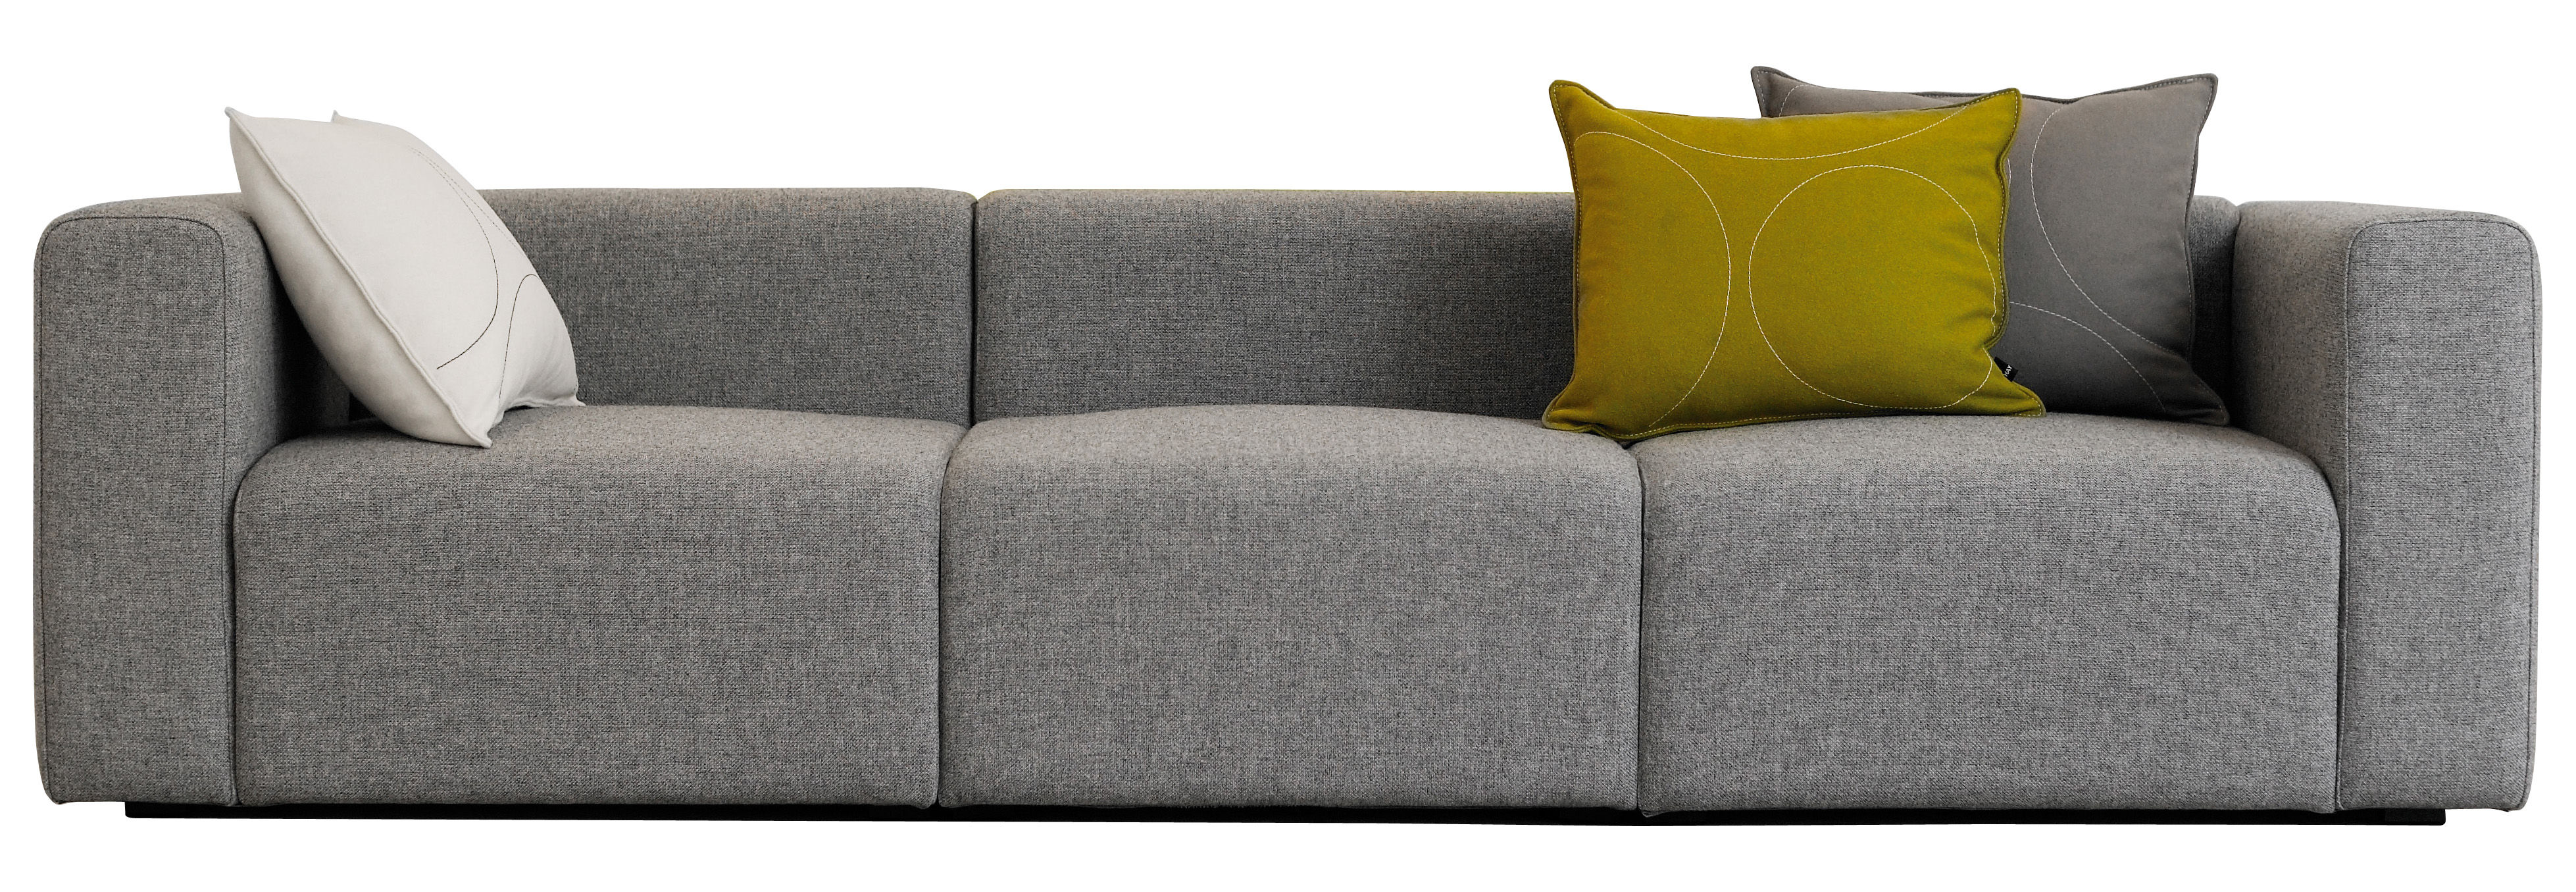 Canap droit mags 3 places l 266 cm tissu hallingdal gris clair hay - Canape made in design ...